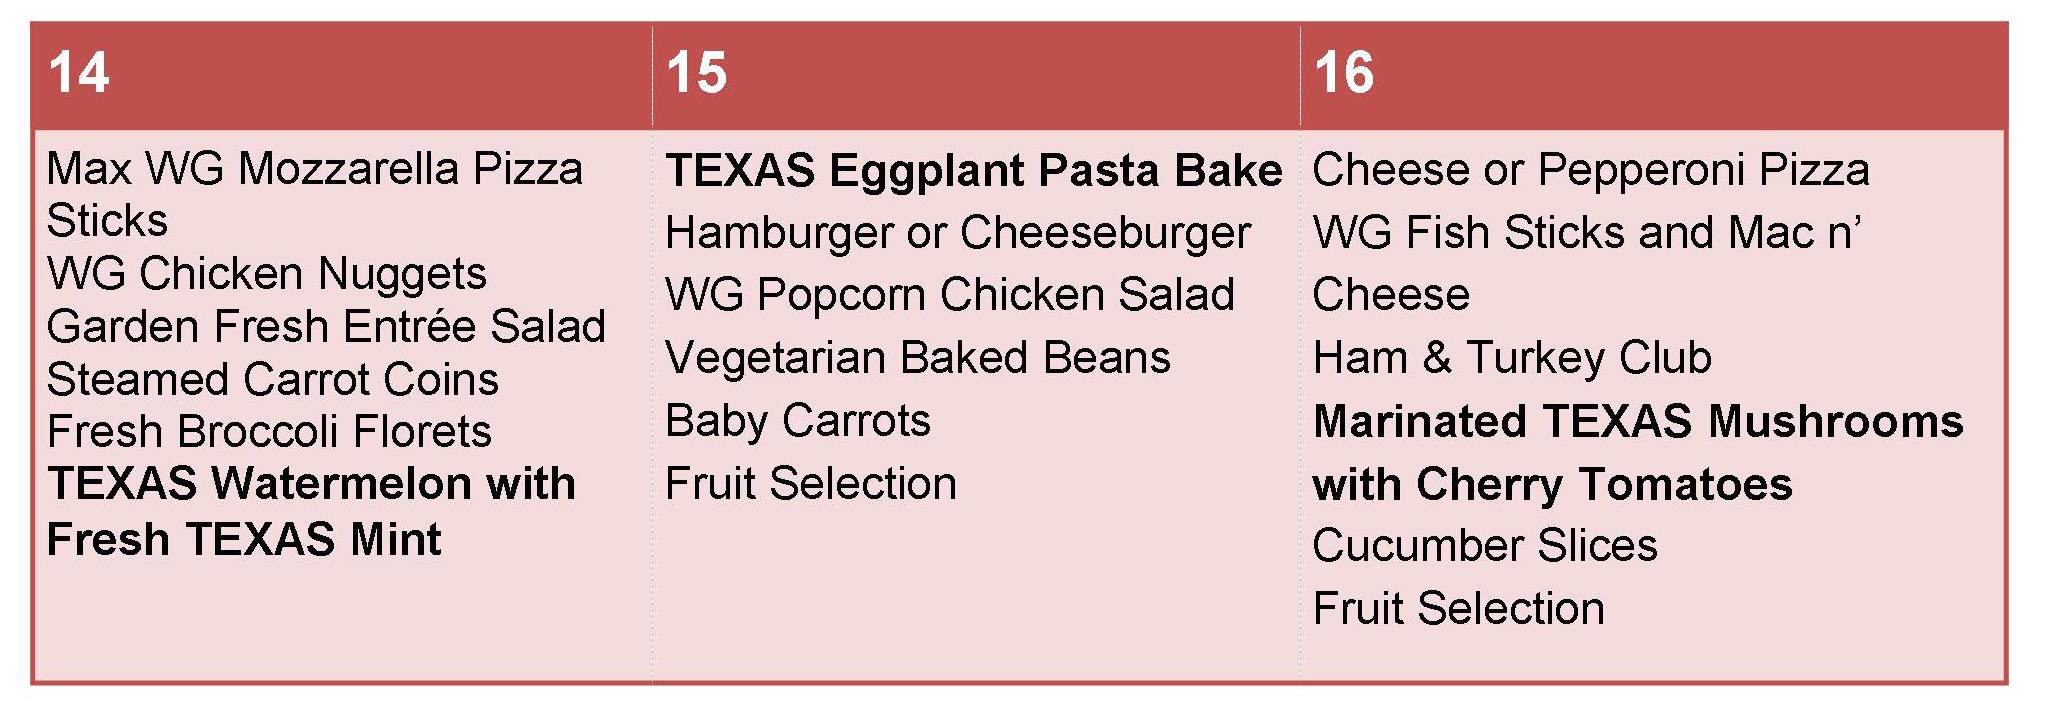 Pflugerville ISD Sample Menu